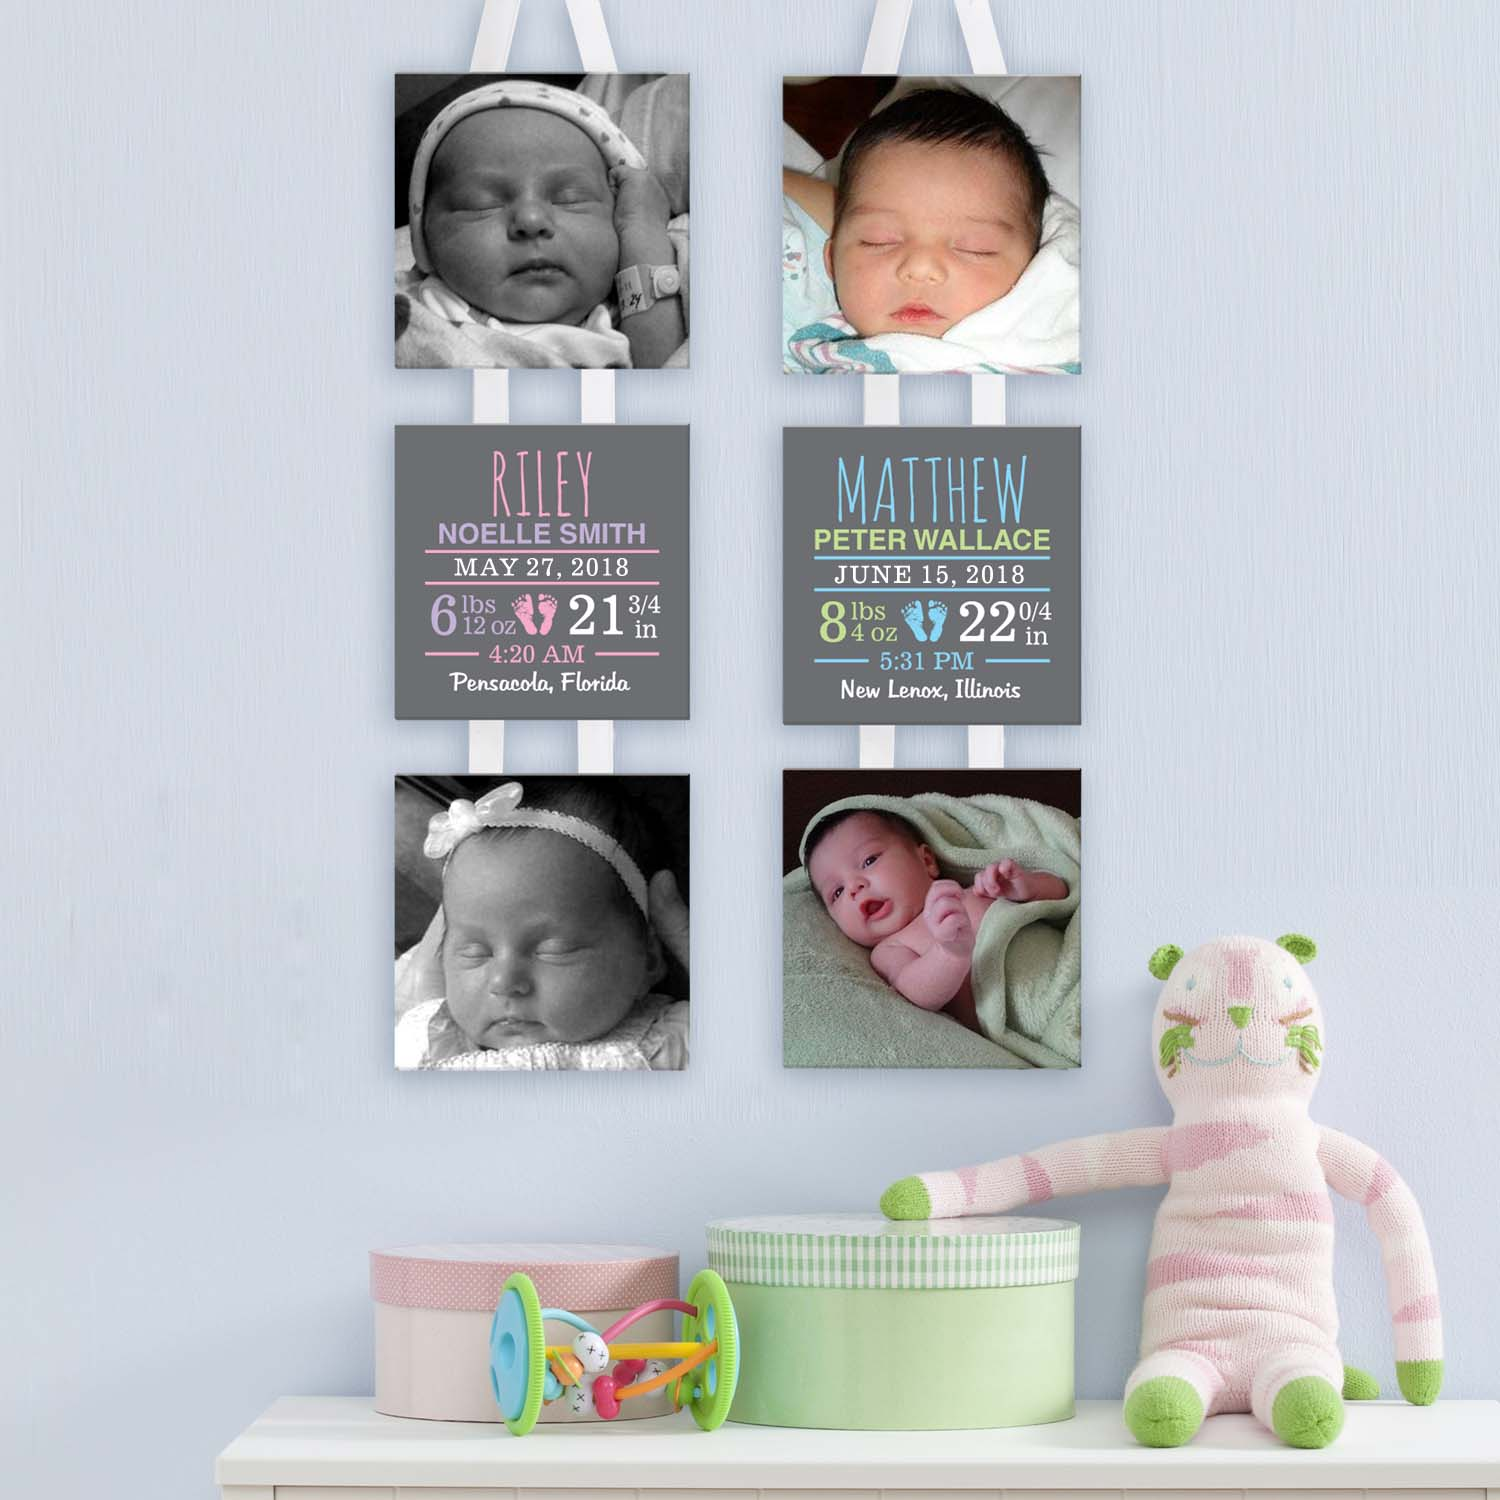 Personalized Baby Photo and Information Hanging Canvas, Available in Boy or Girl